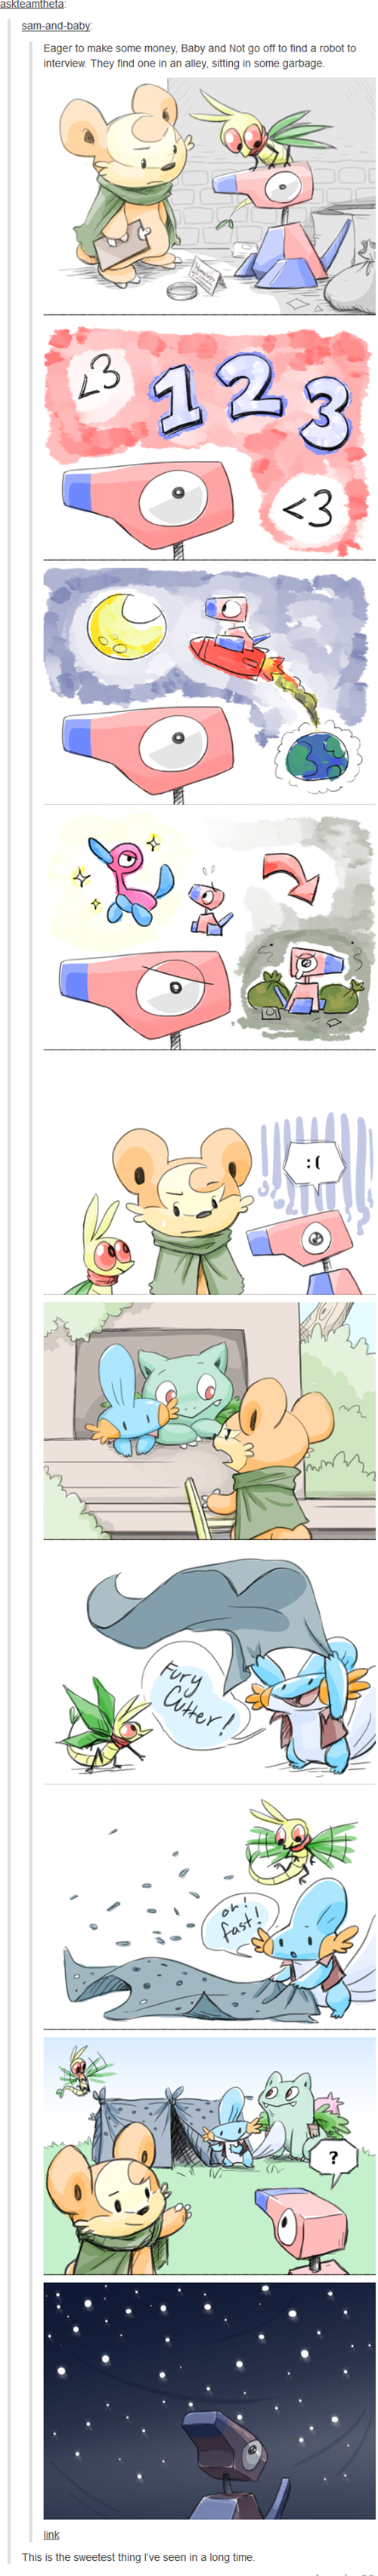 Pokémon porygon web comics - 8285594368